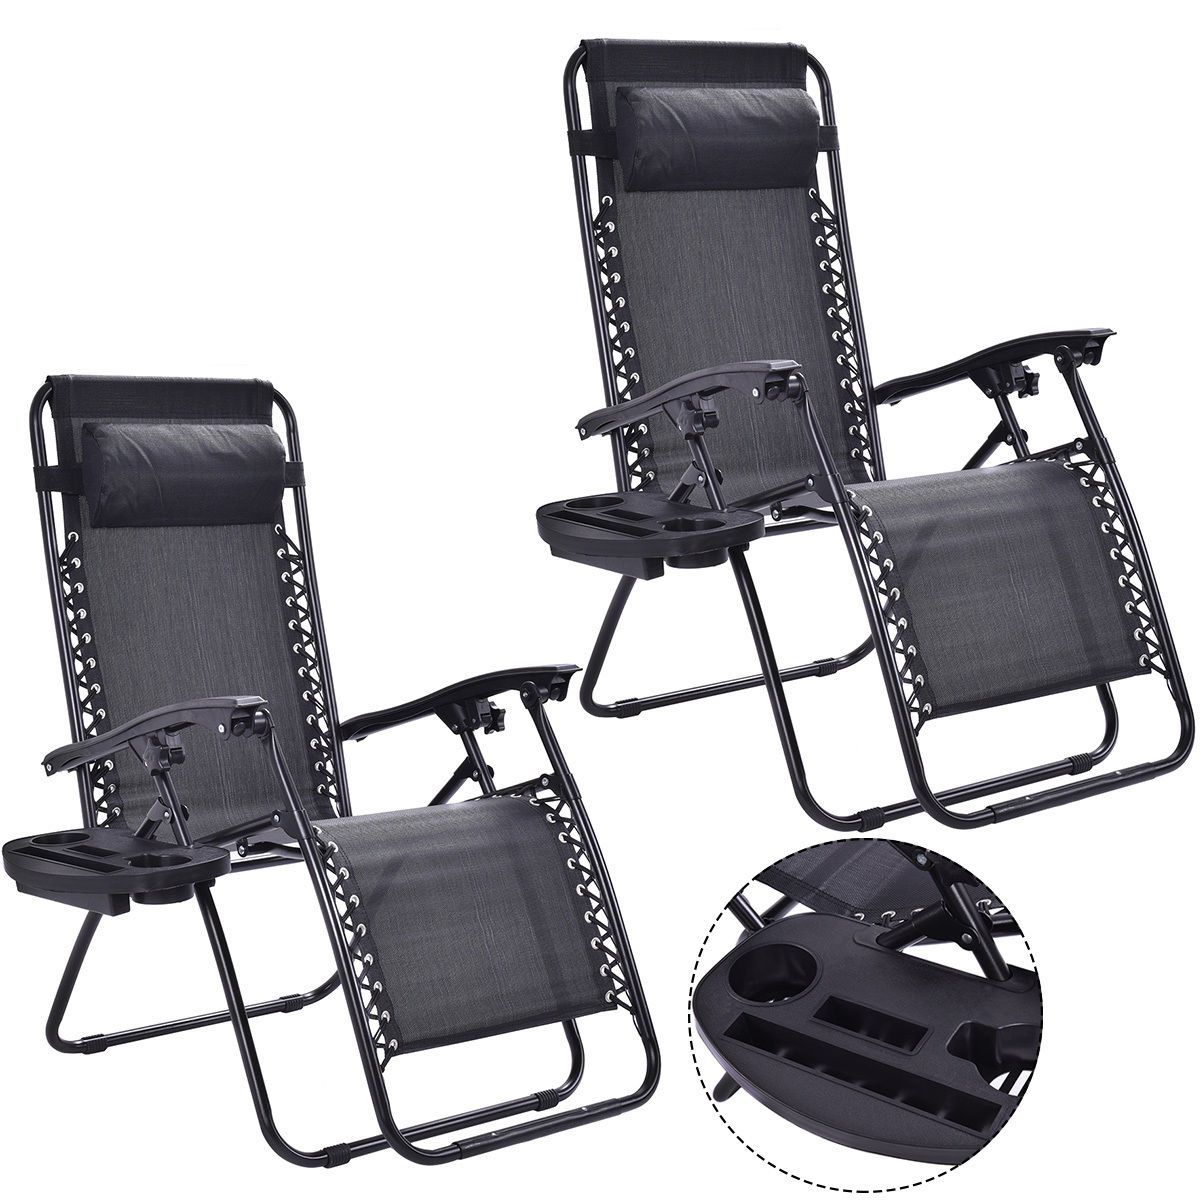 portable lounge chair cushion target stacking chairs 2 pcs folding with zero gravity in 2019 furniture 2pc patio recliner outdoor w cup holder